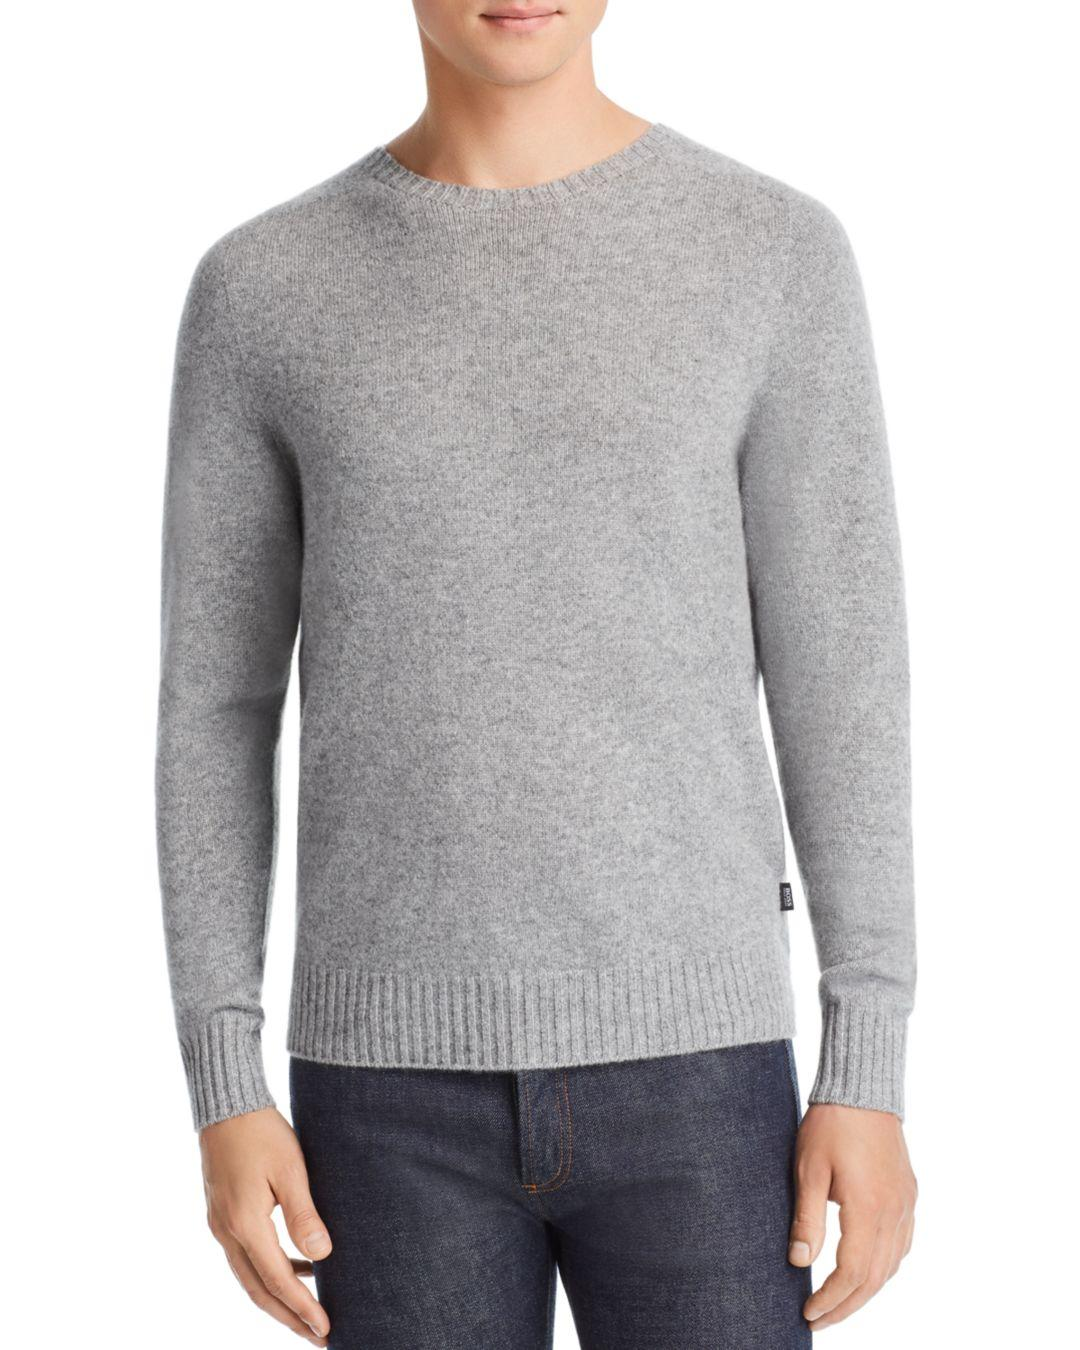 9f50006d67a822 Lyst - BOSS Boss Laudato Cashmere Sweater in Gray for Men